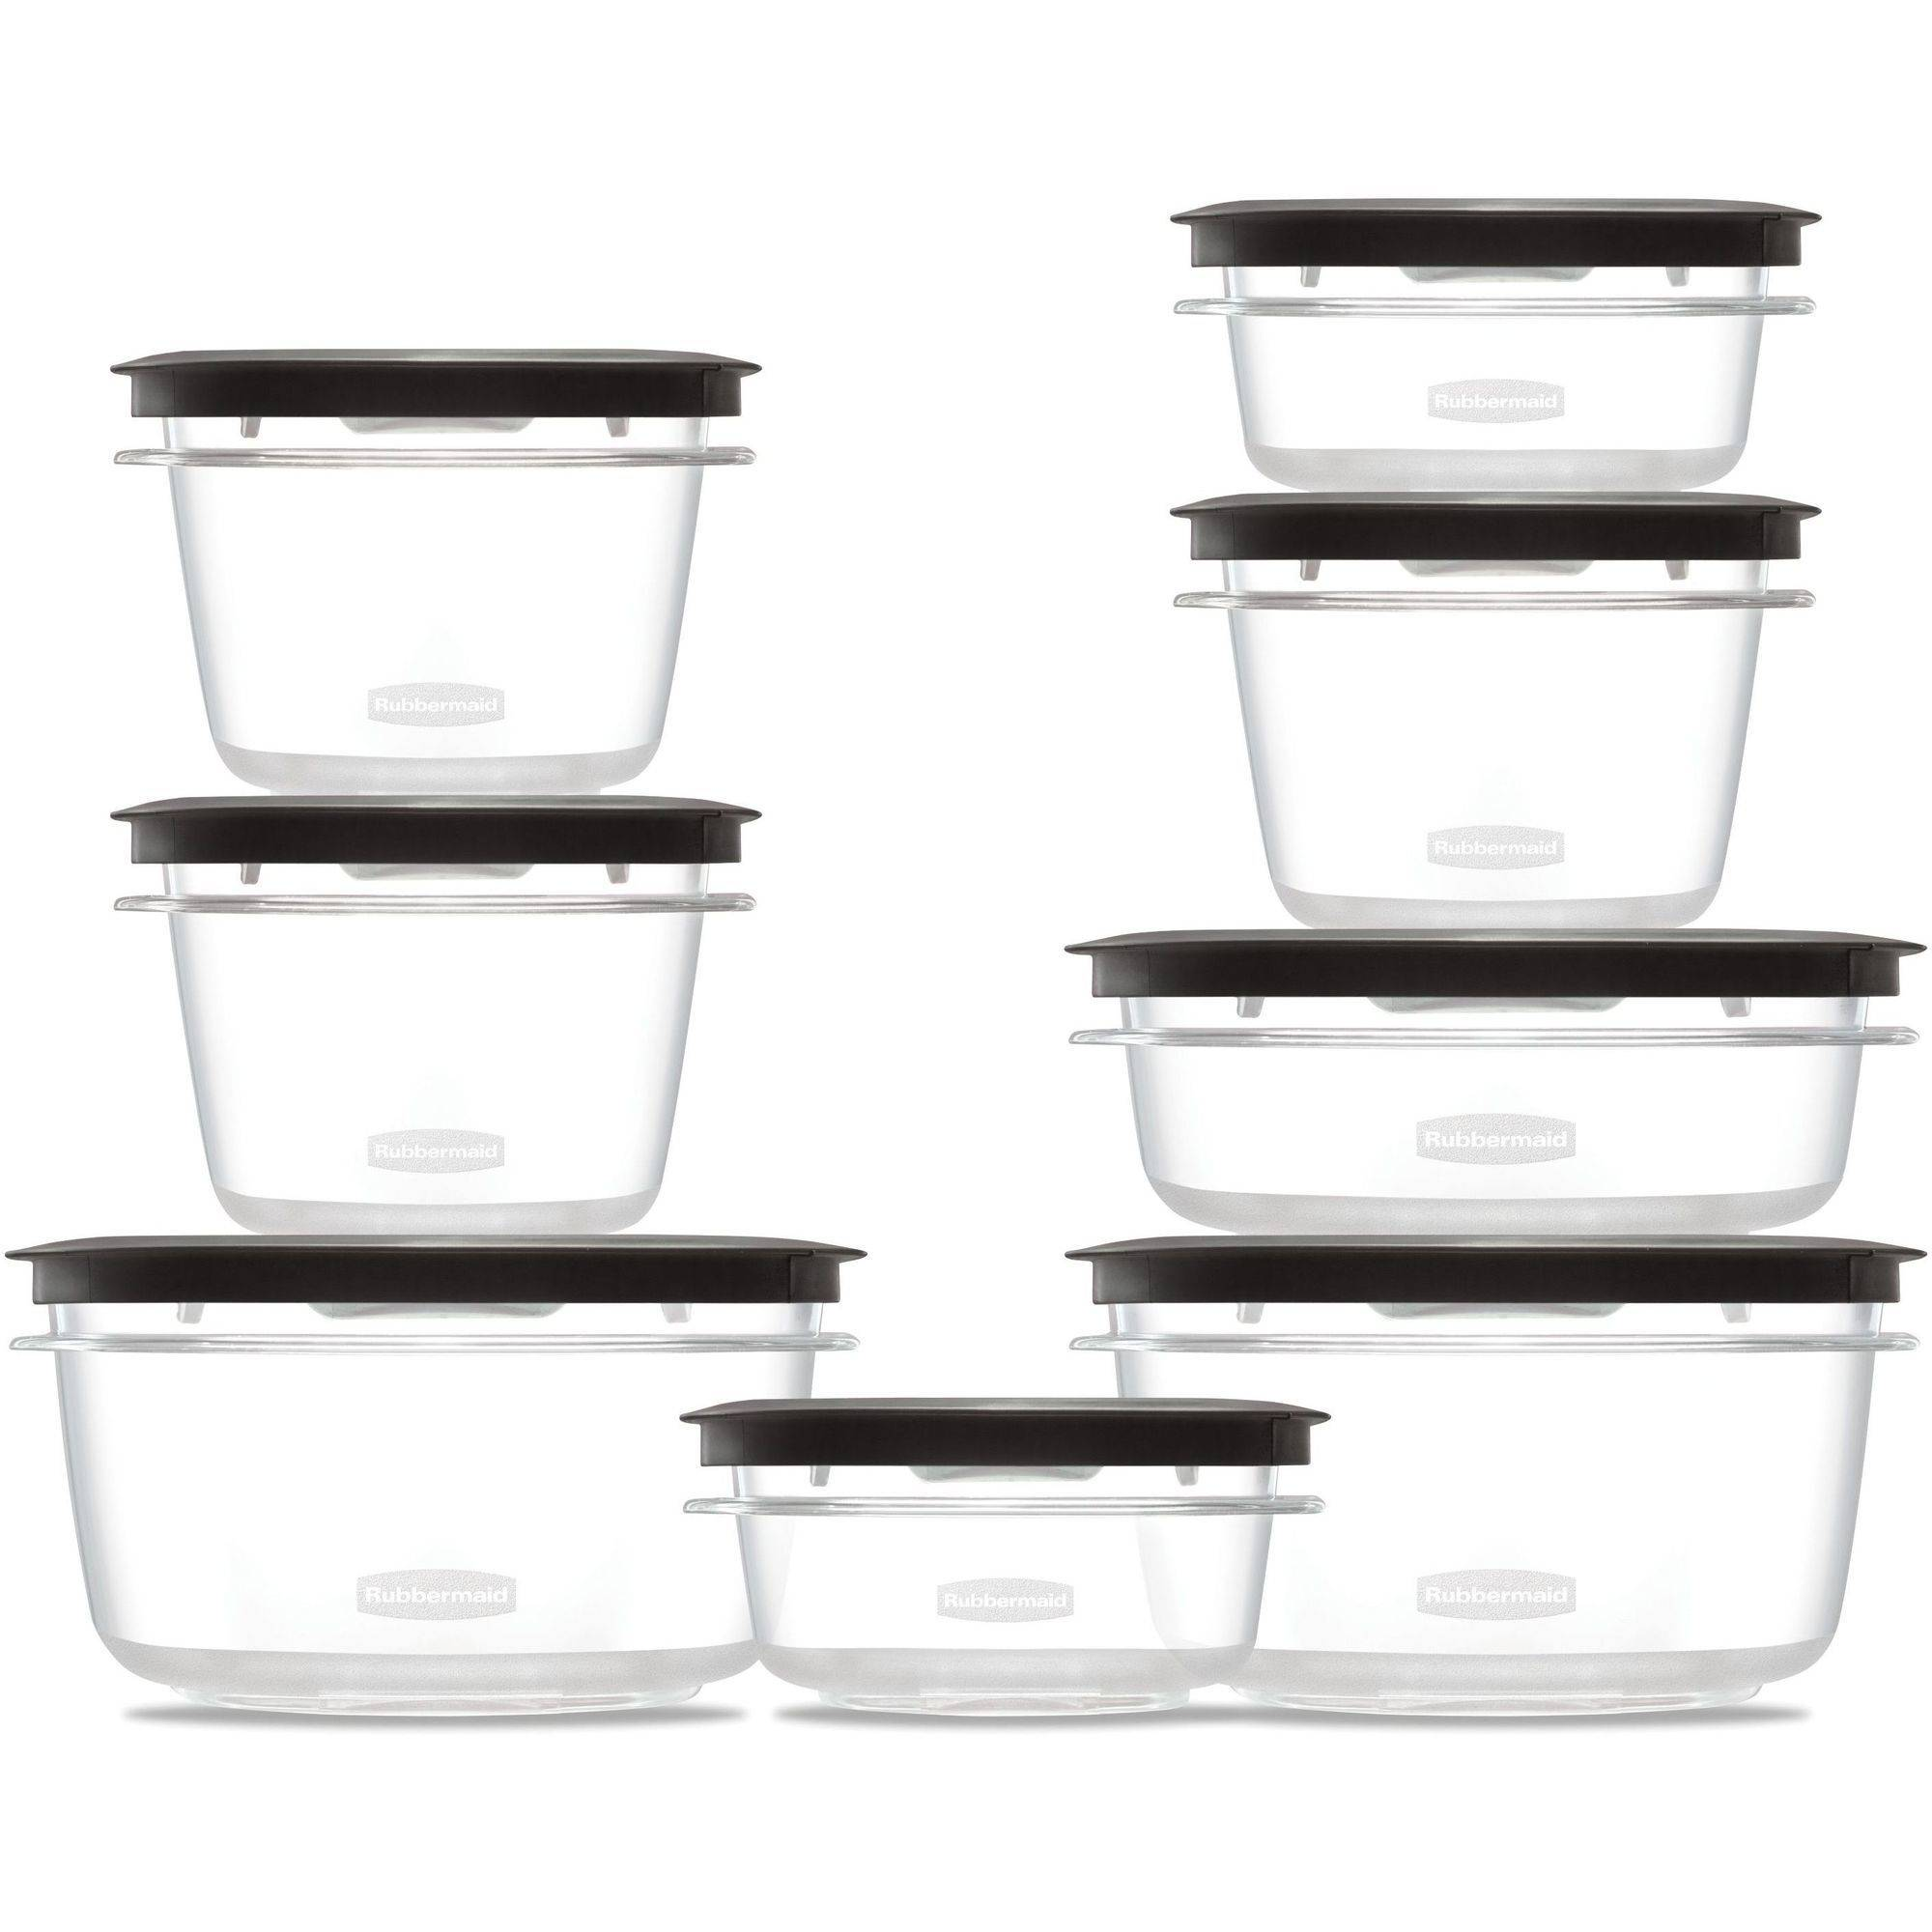 Rubbermaid Premier Food Storage Container, 16 Piece Set, Grey   Walmart.com